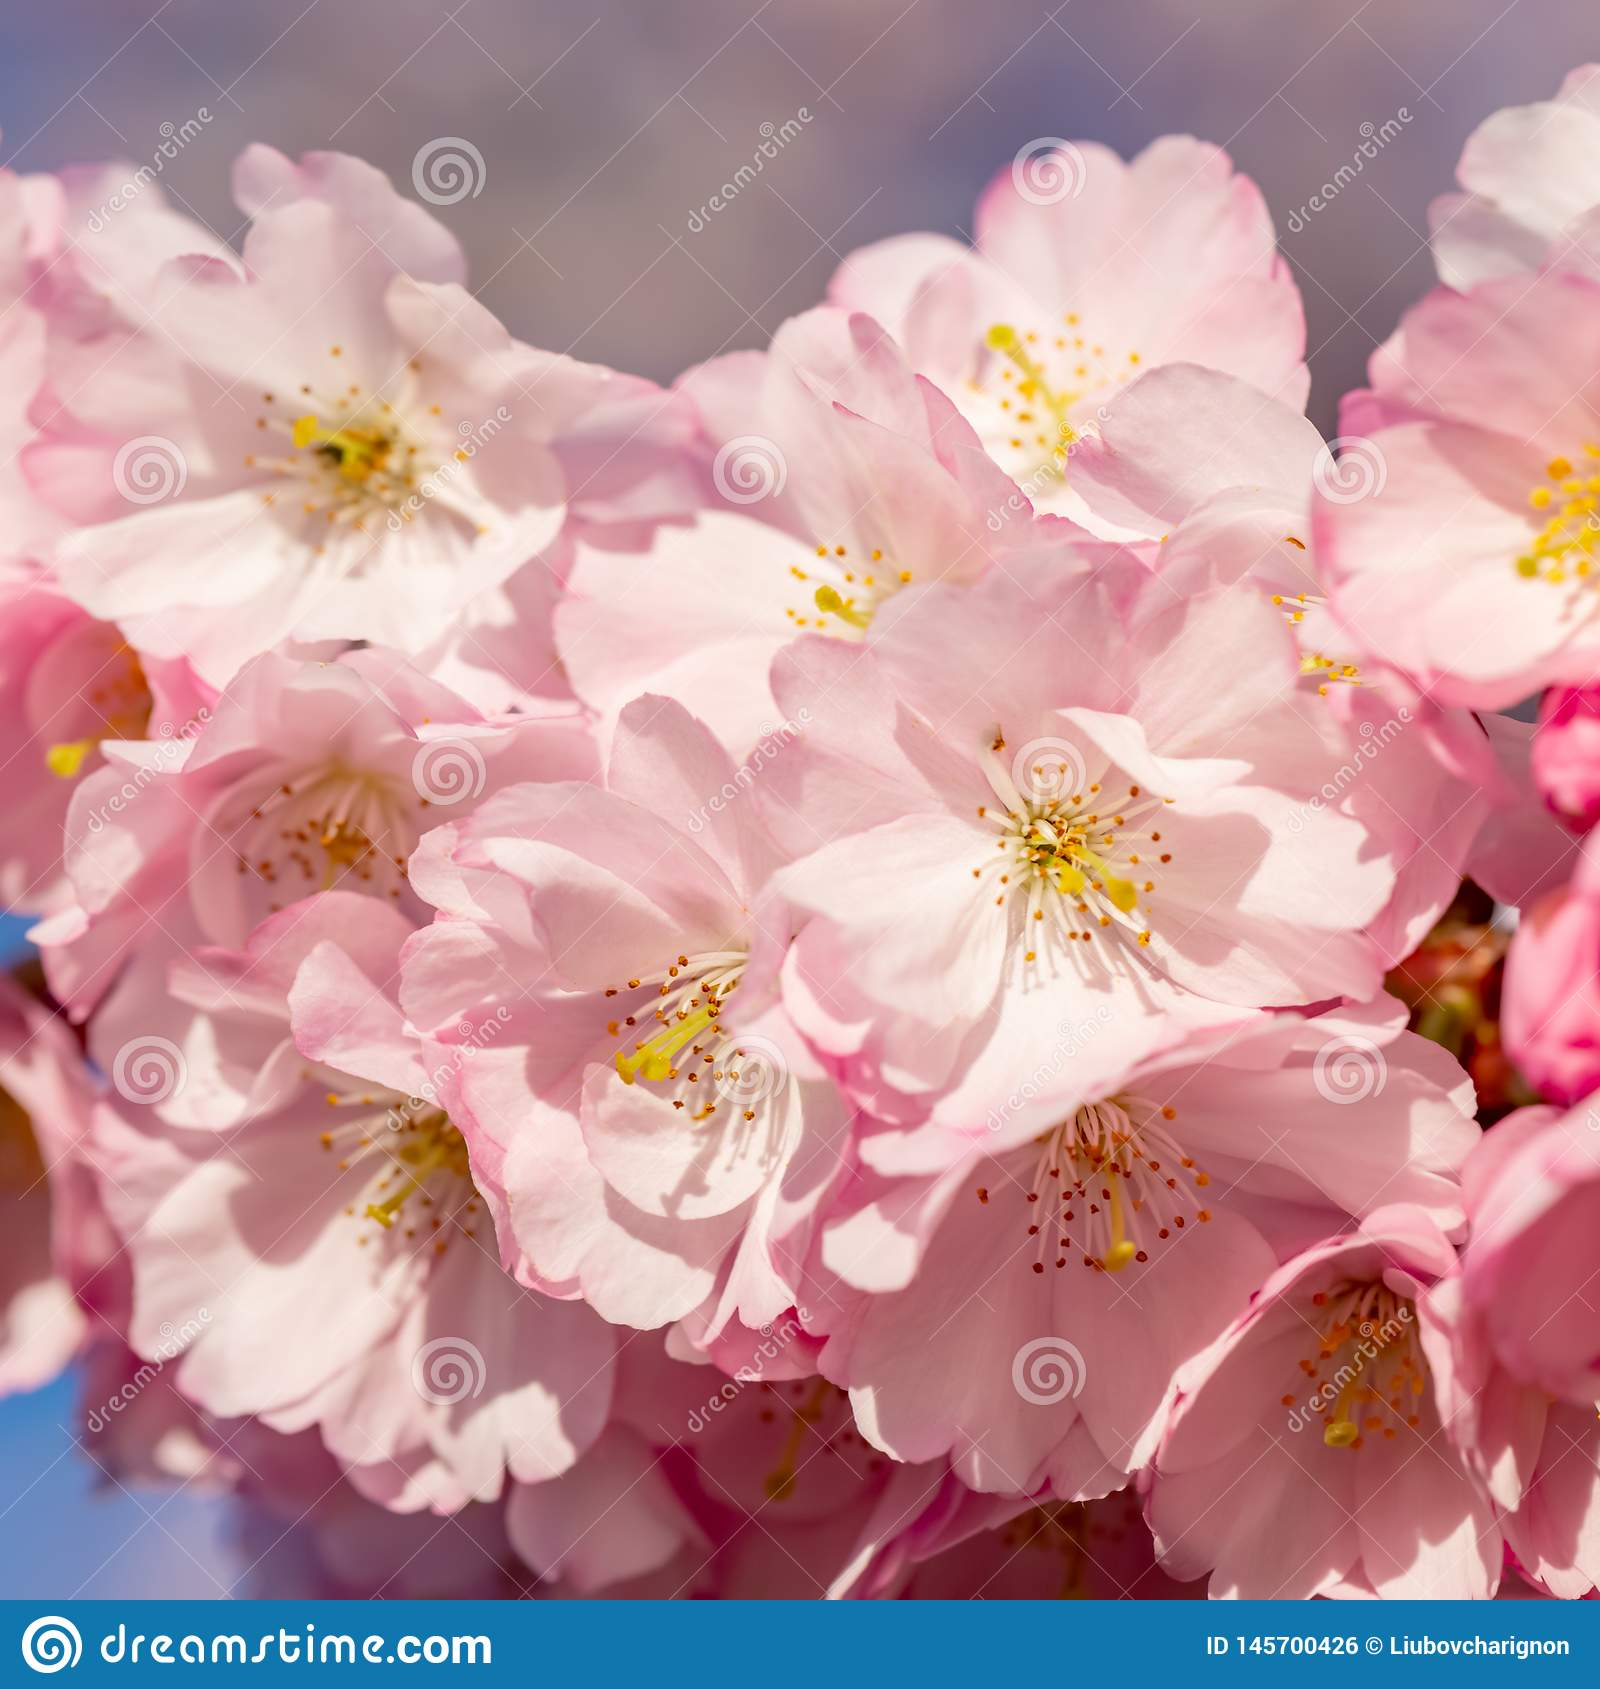 Blooming cherry tree in springtime. Beautiful spring pink flowers in a park.